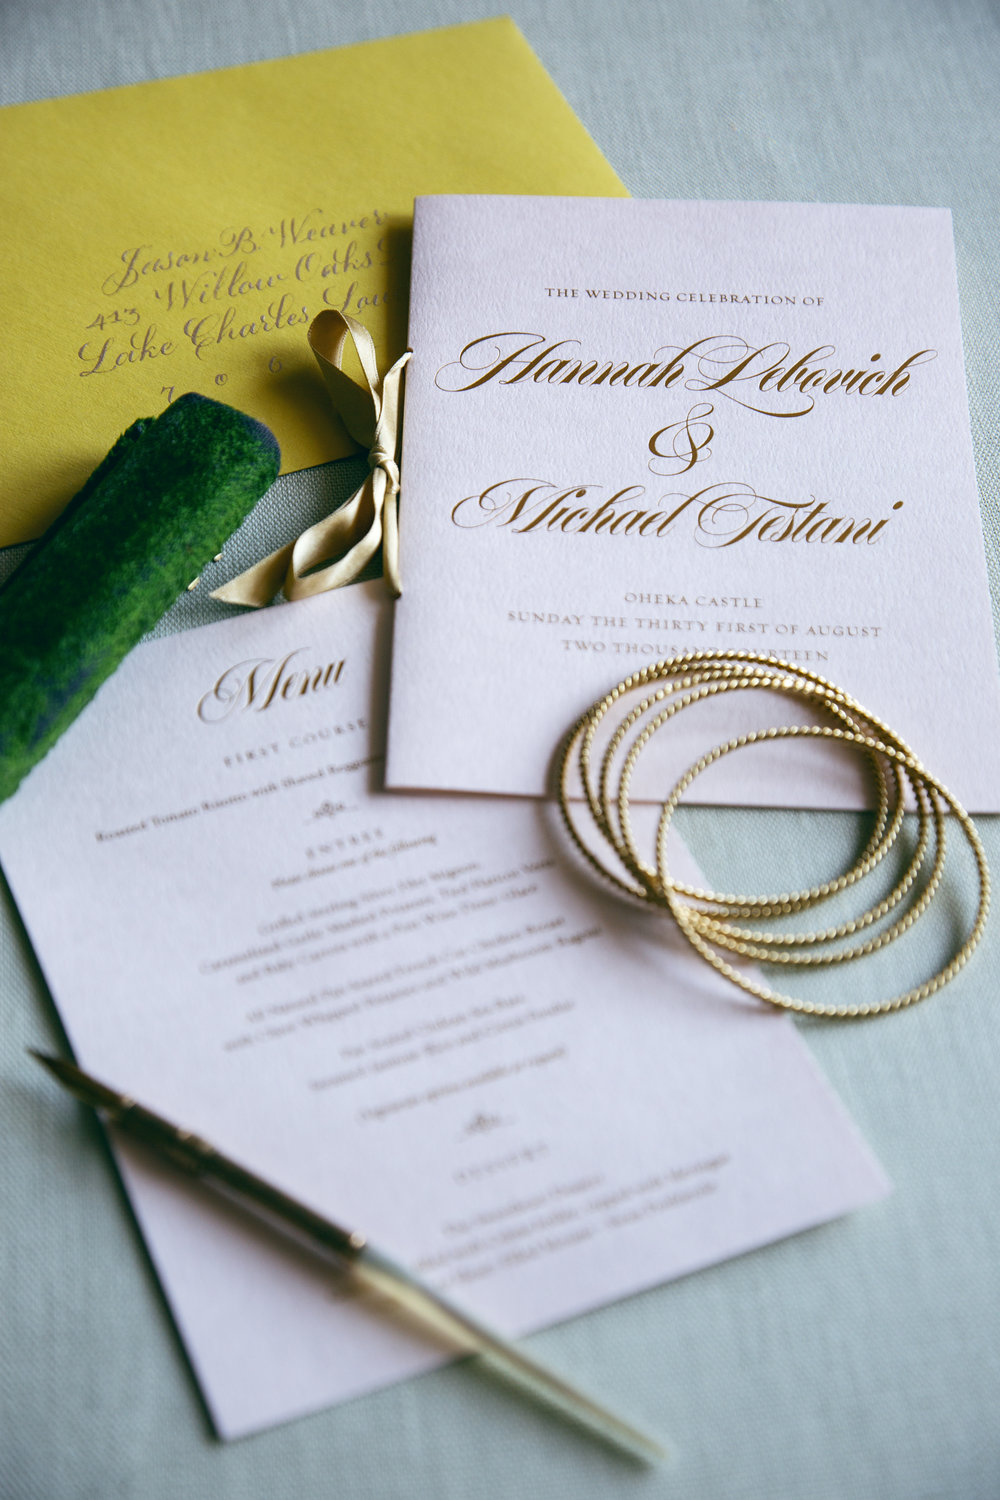 Wedding menu and wedding program with gold foil for a luxurious Oheka Castle wedding by Chavelli | www.chavelli.com